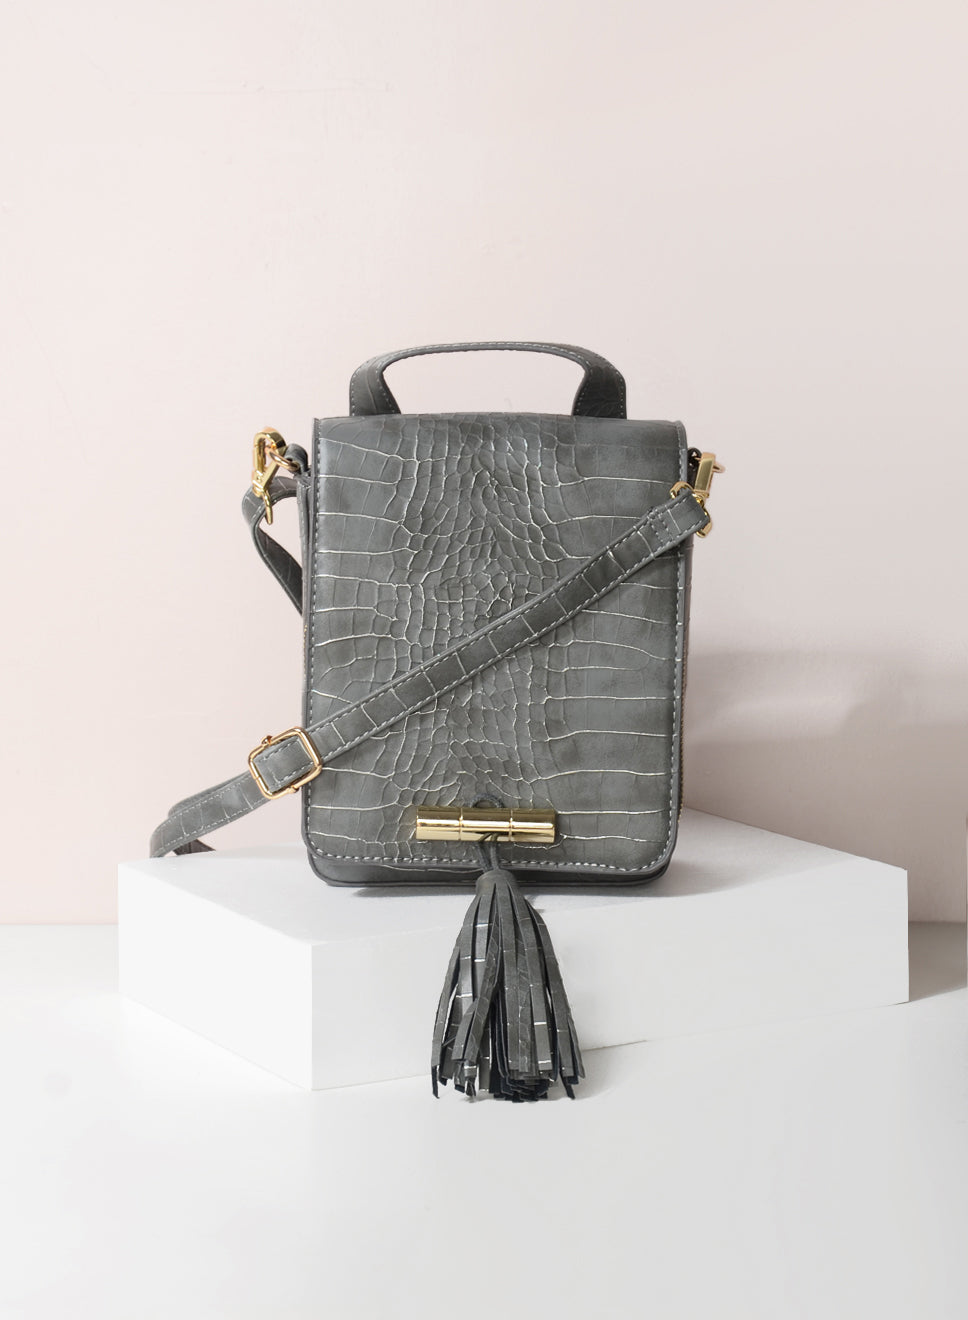 MILA CRACKED LEATHER BAG (GREY) at $ 22.50 only sold at And Well Dressed Online Fashion Store Singapore